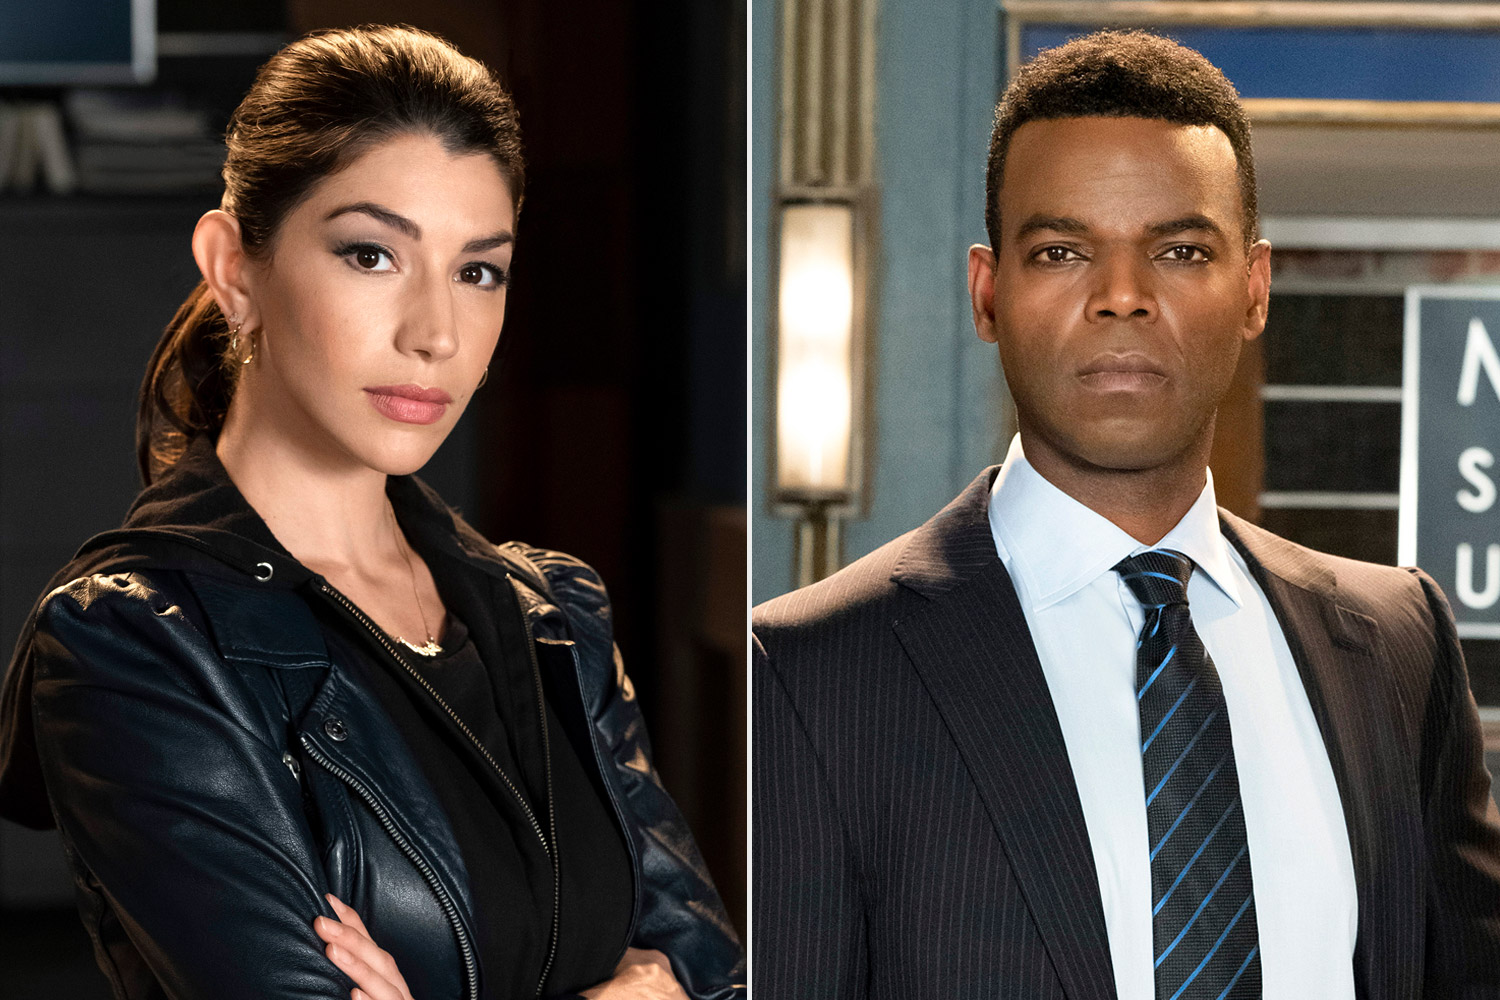 Jamie Gray Hyder and Demore Barnes on Law & Order: SVU